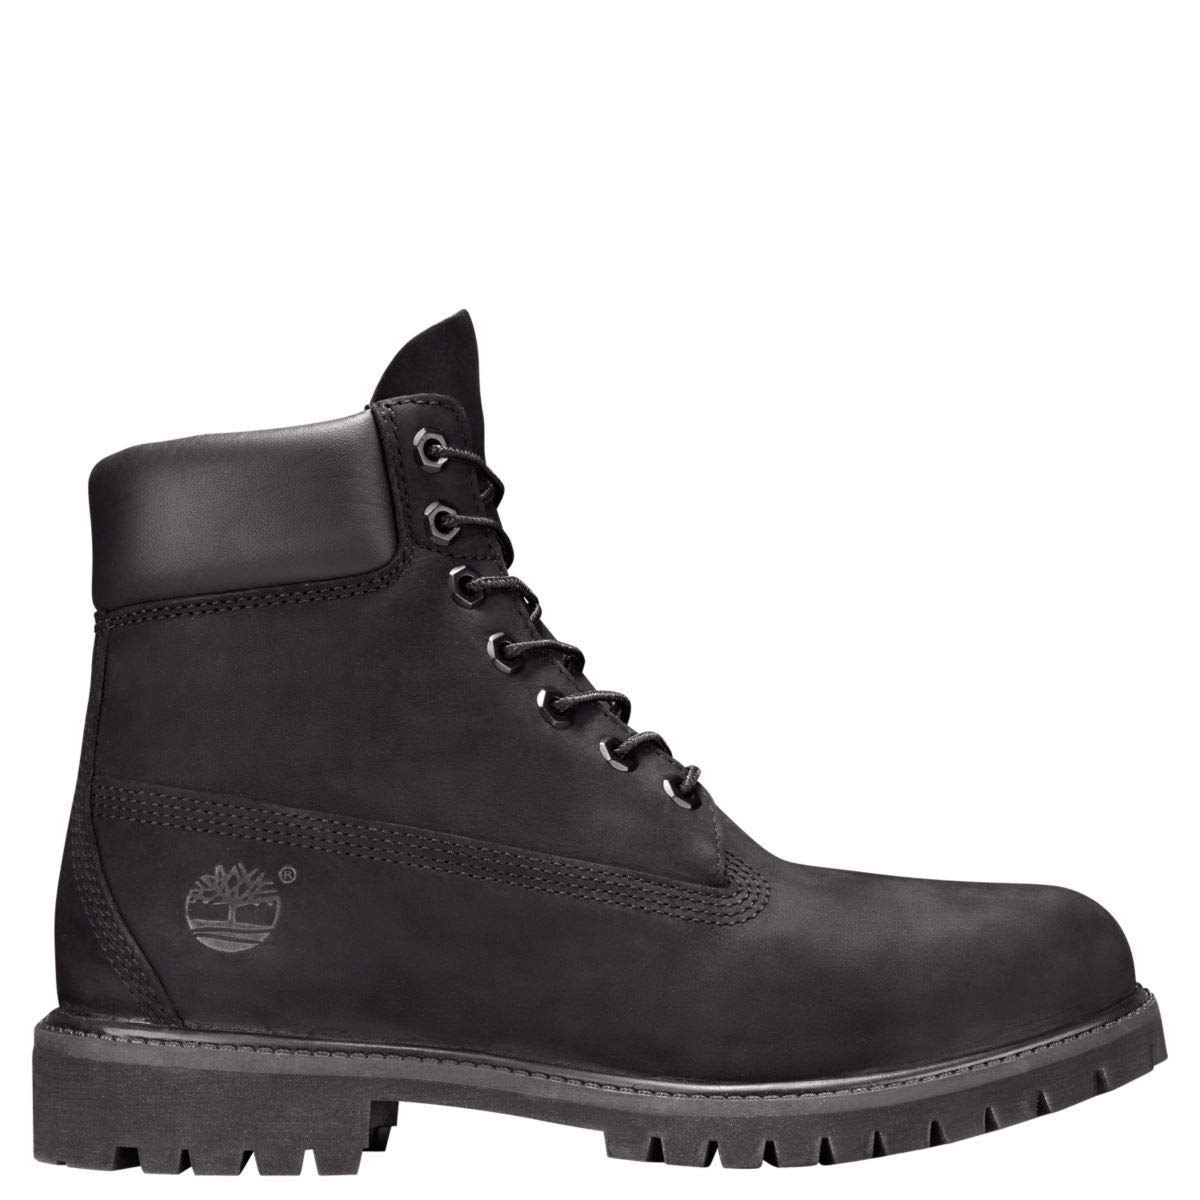 online store 365c6 3f199 Amazon.com  Timberland Mens 6-Inch Premium Waterproof Boot